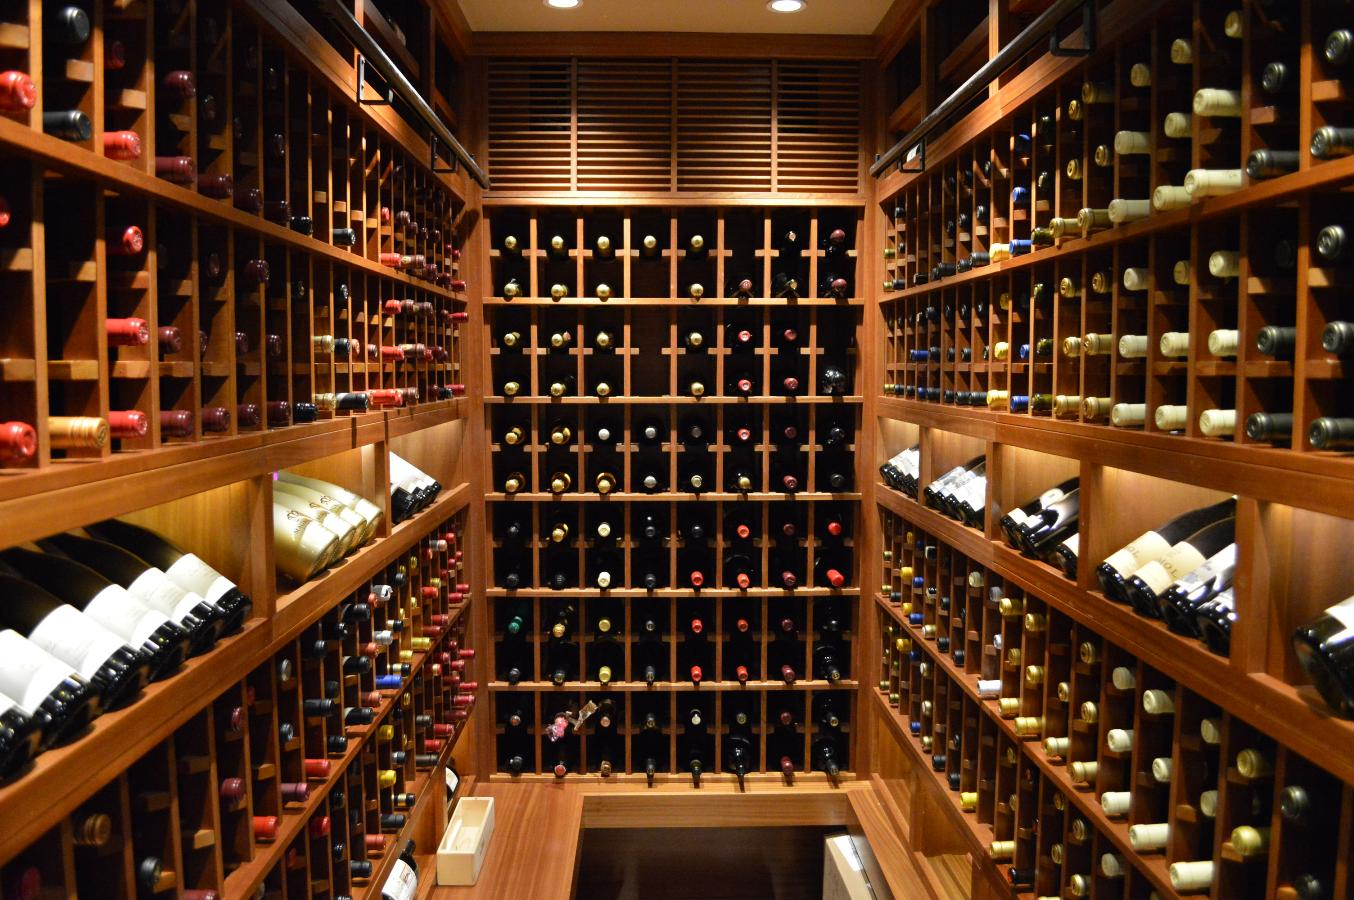 Contemporay-Wine-Cellar-Design-Canada-Master-Builders.jpg